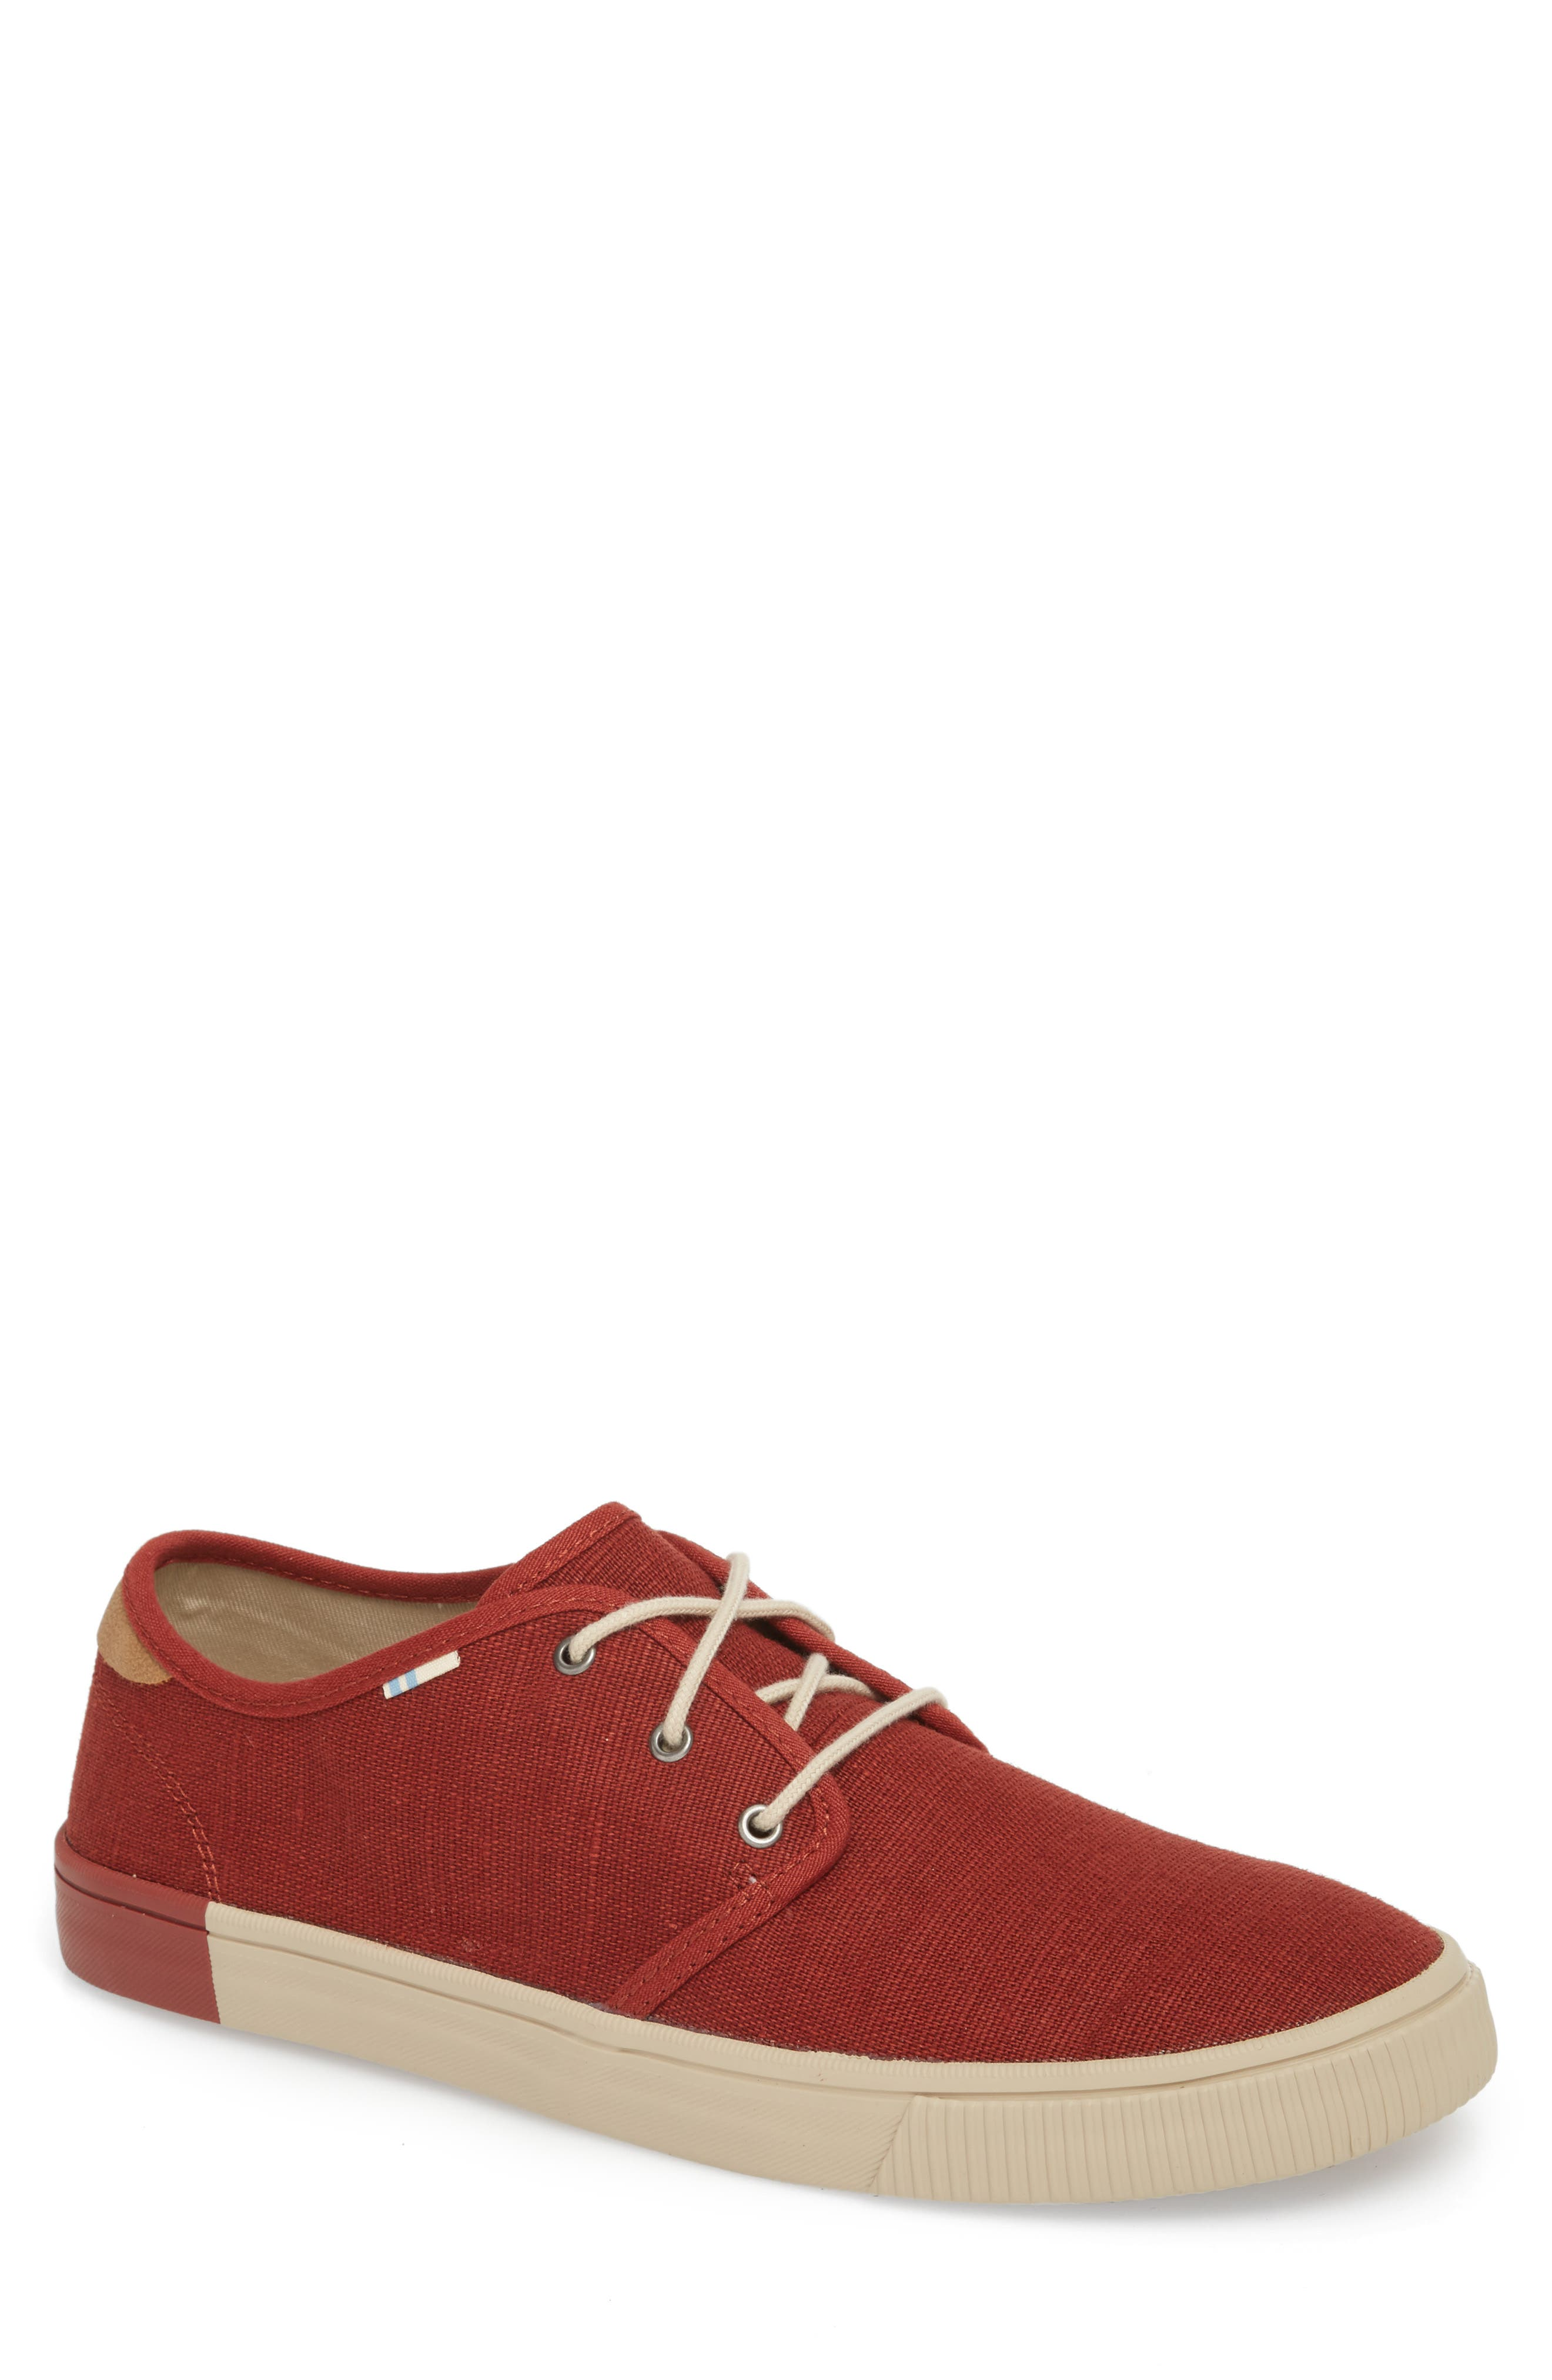 Carlo Low Top Sneaker,                             Main thumbnail 1, color,                             Burnt Henna Heritage Canvas